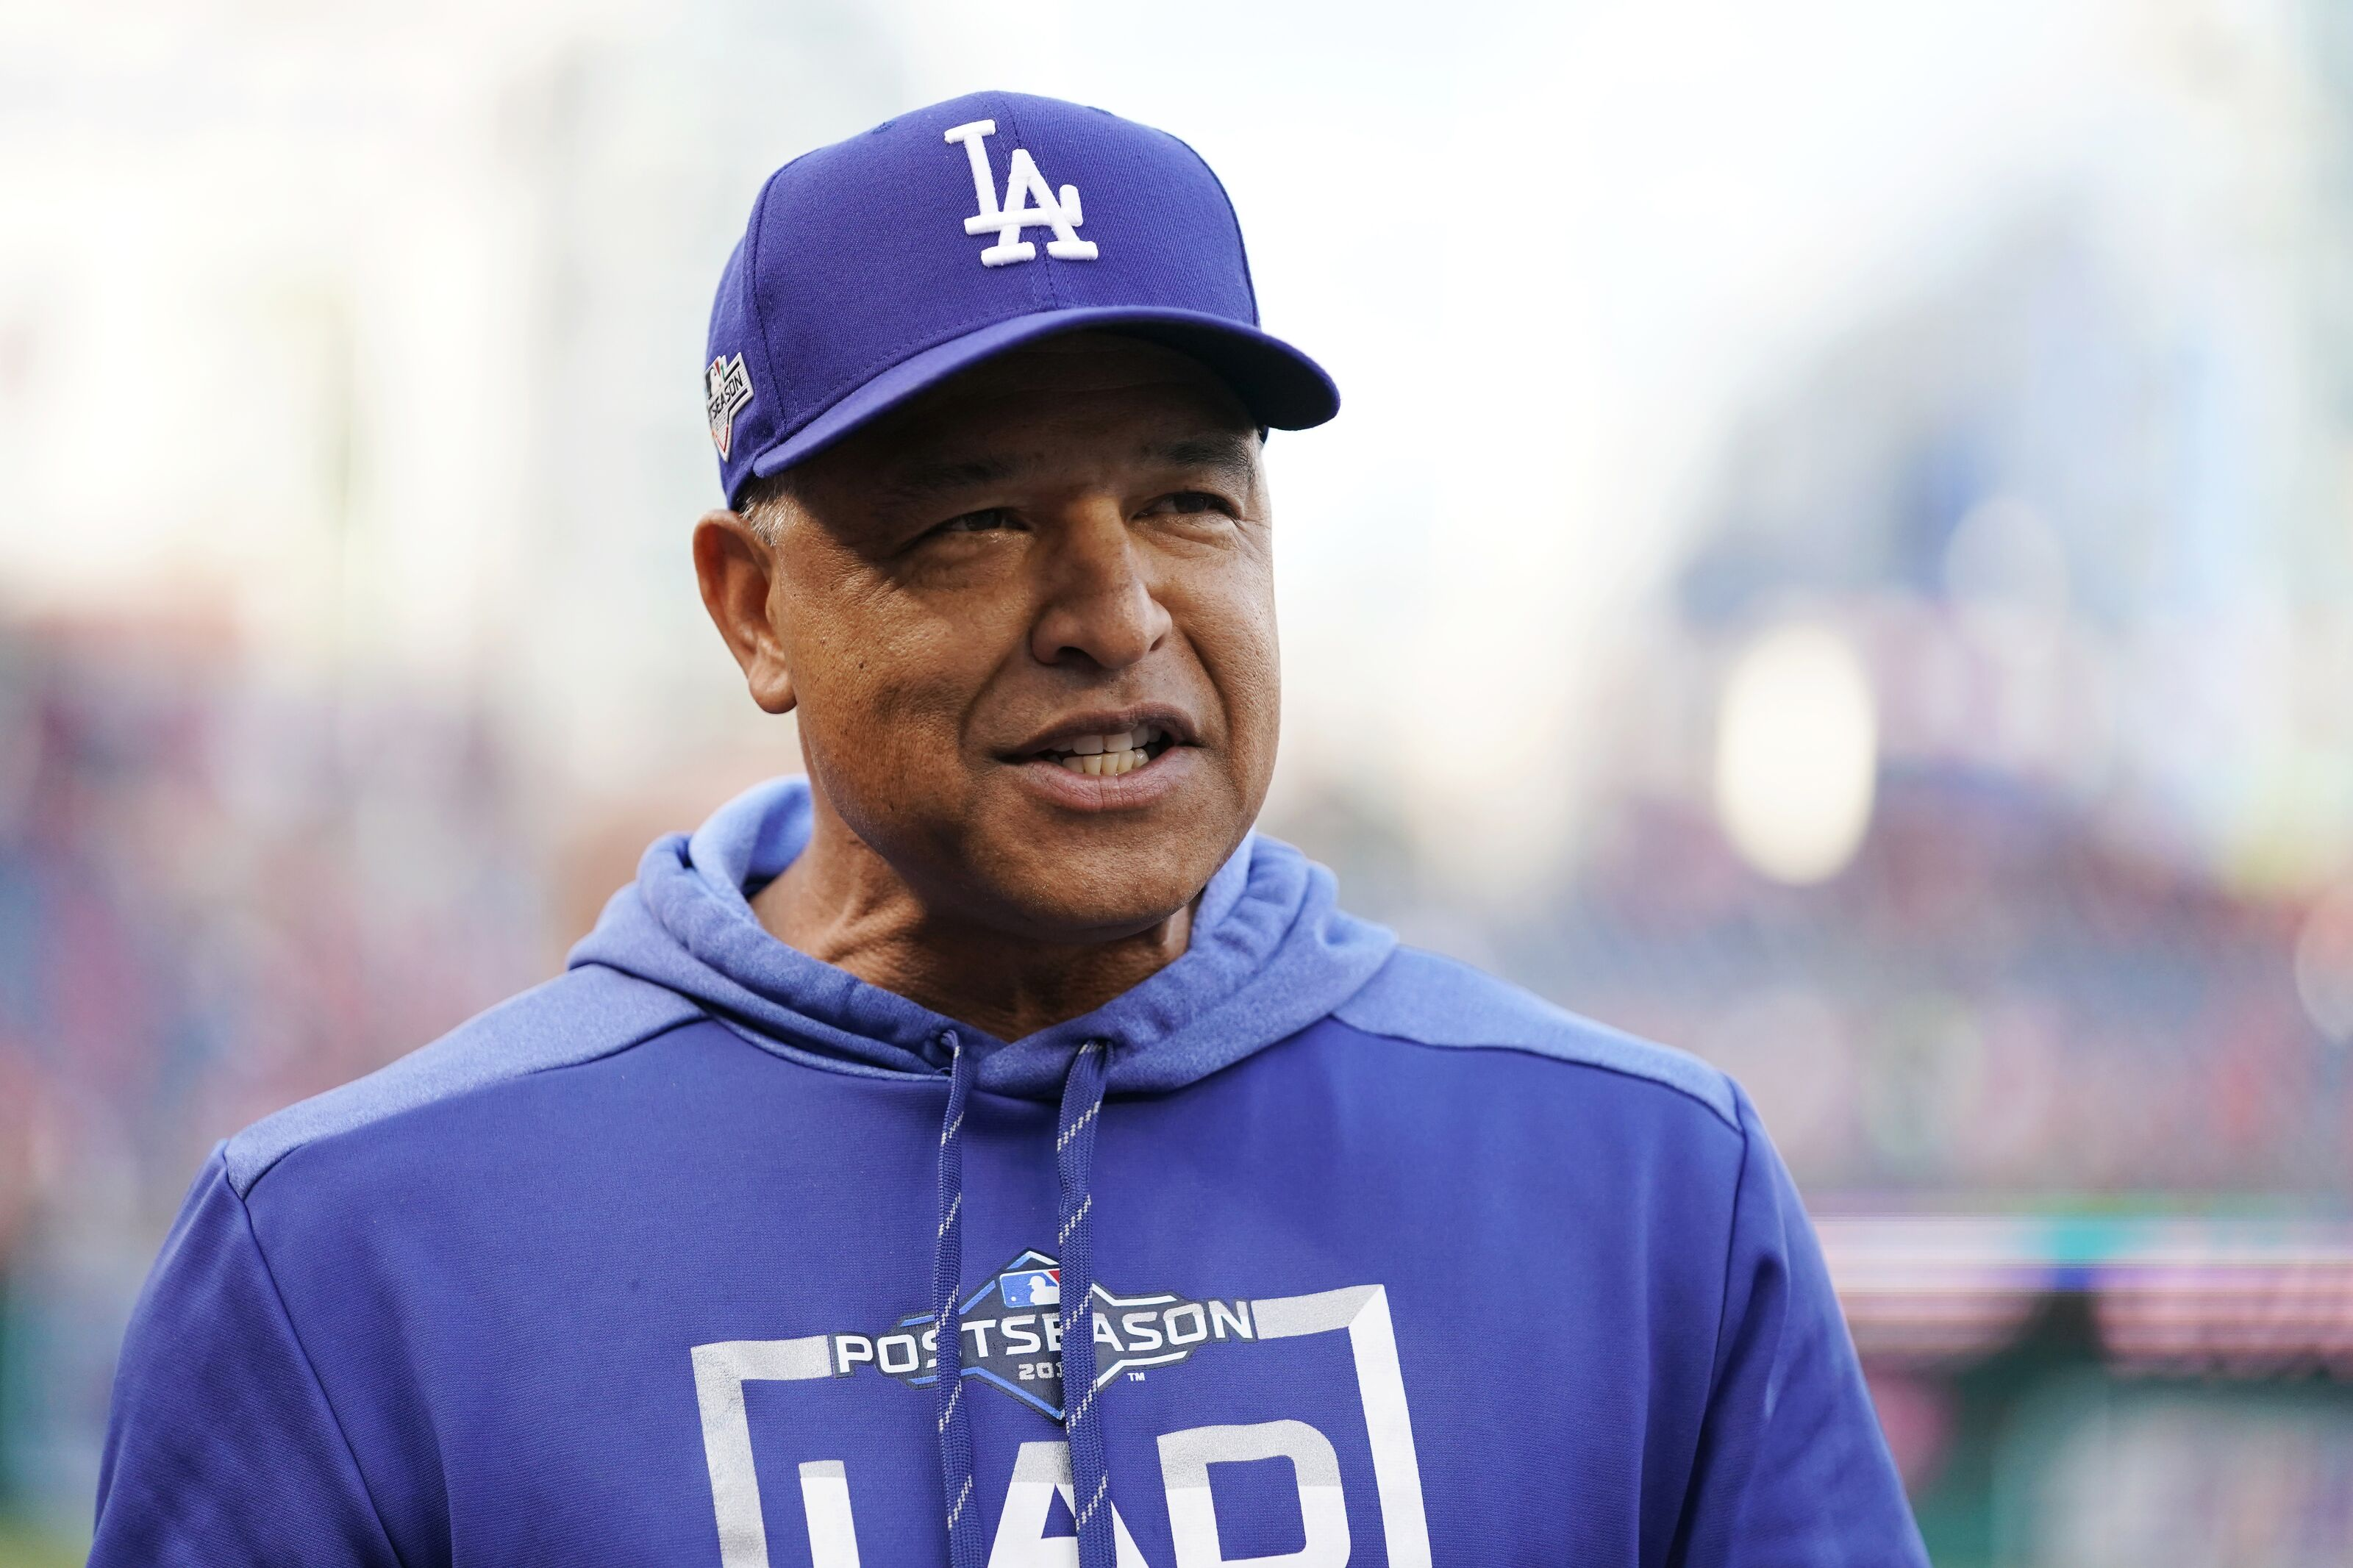 Dodgers: Dave Roberts botched game five for the Dodgers